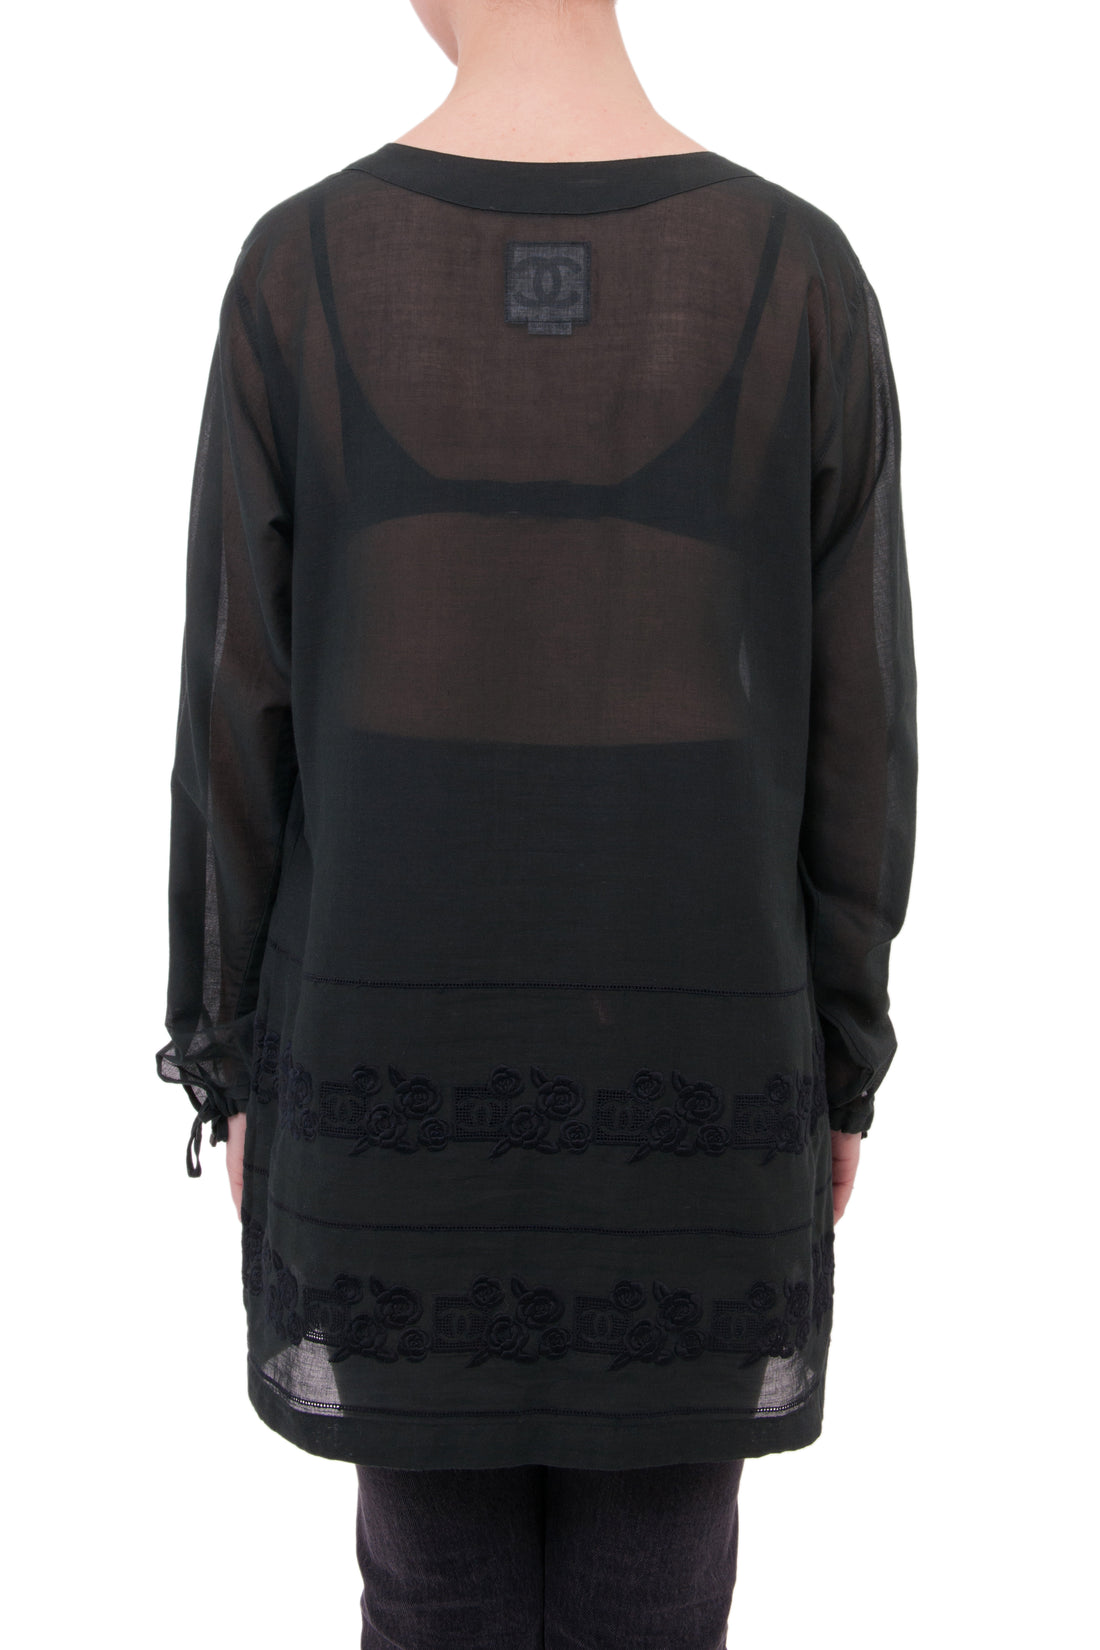 Chanel Sport 07P Sheer Black Embroidered Tunic Top